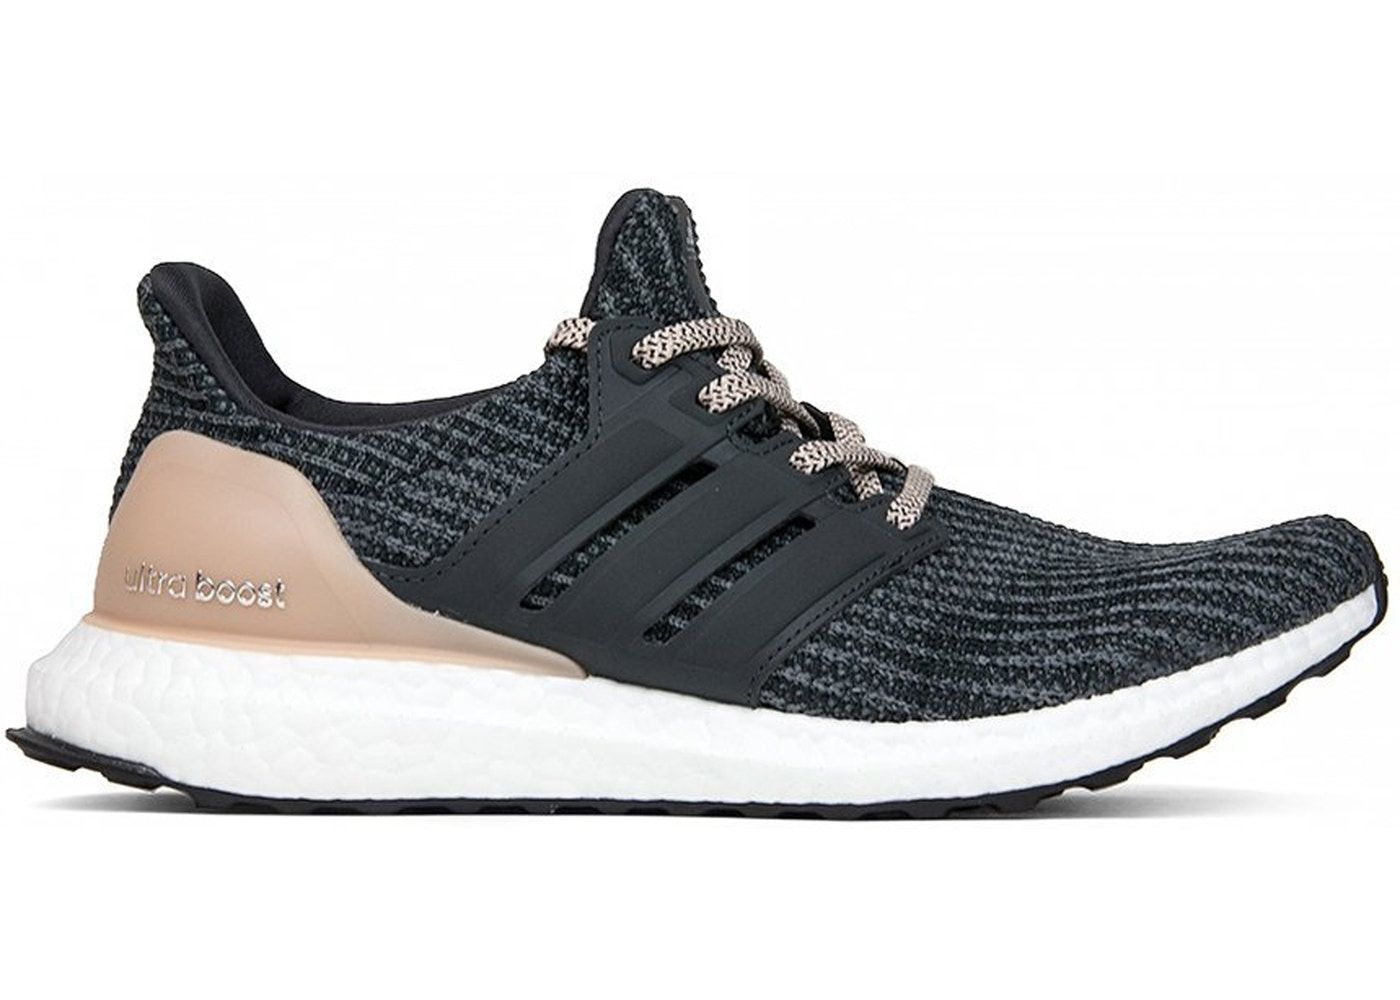 Adidas Ultra Boost 4 0 Grey Five Ash Pearl W Adidas Ultra Boost Adidas Ultra Boost Women Fashion High Heels Find great deals on new items shipped from stores to your door. adidas ultra boost 4 0 grey five ash